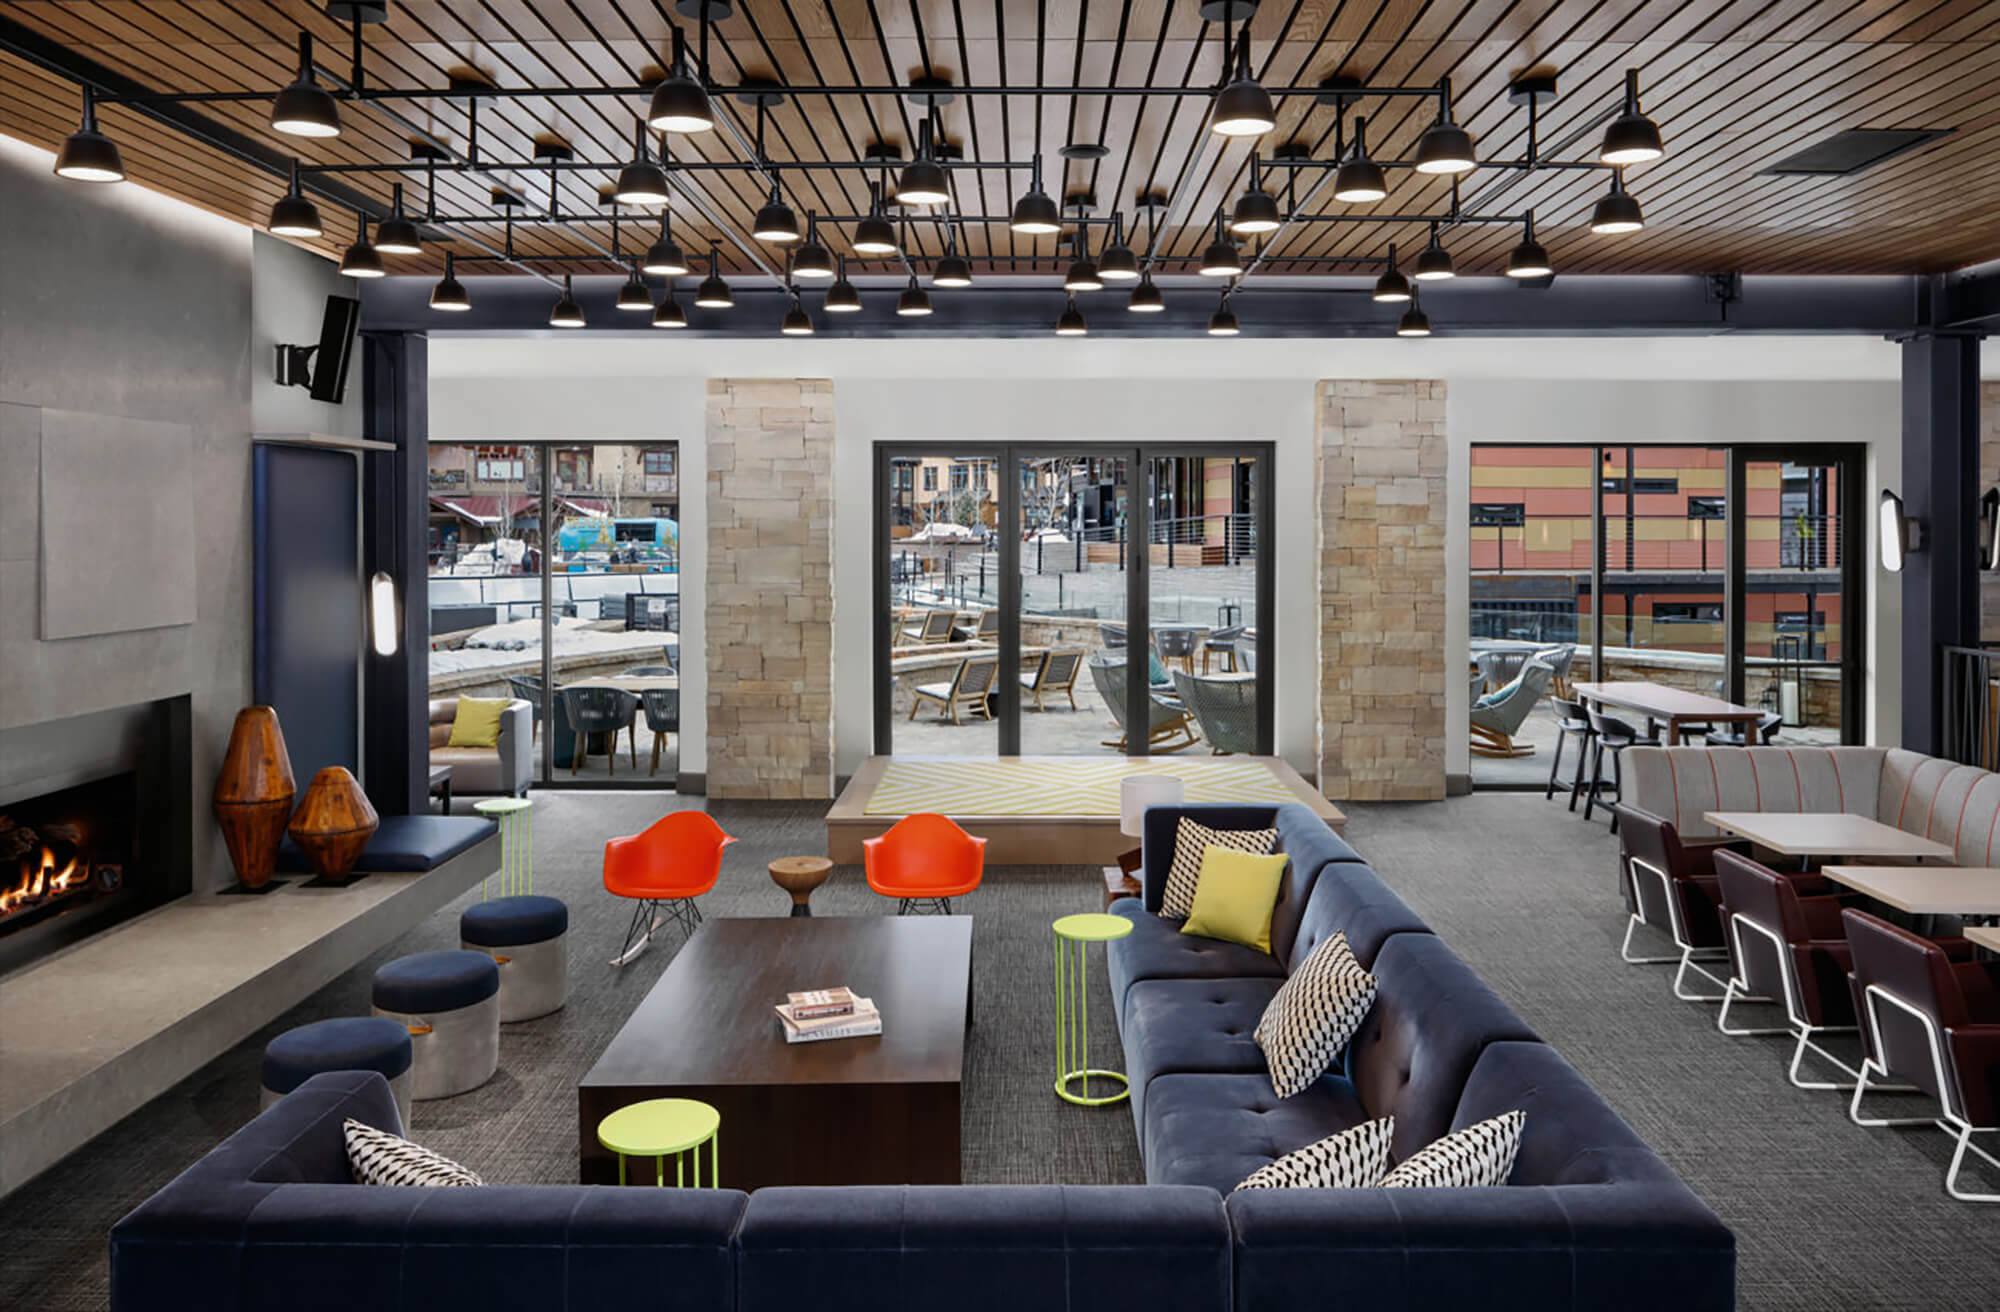 Open fire and lounge interior design at the Limelight Snowmass.